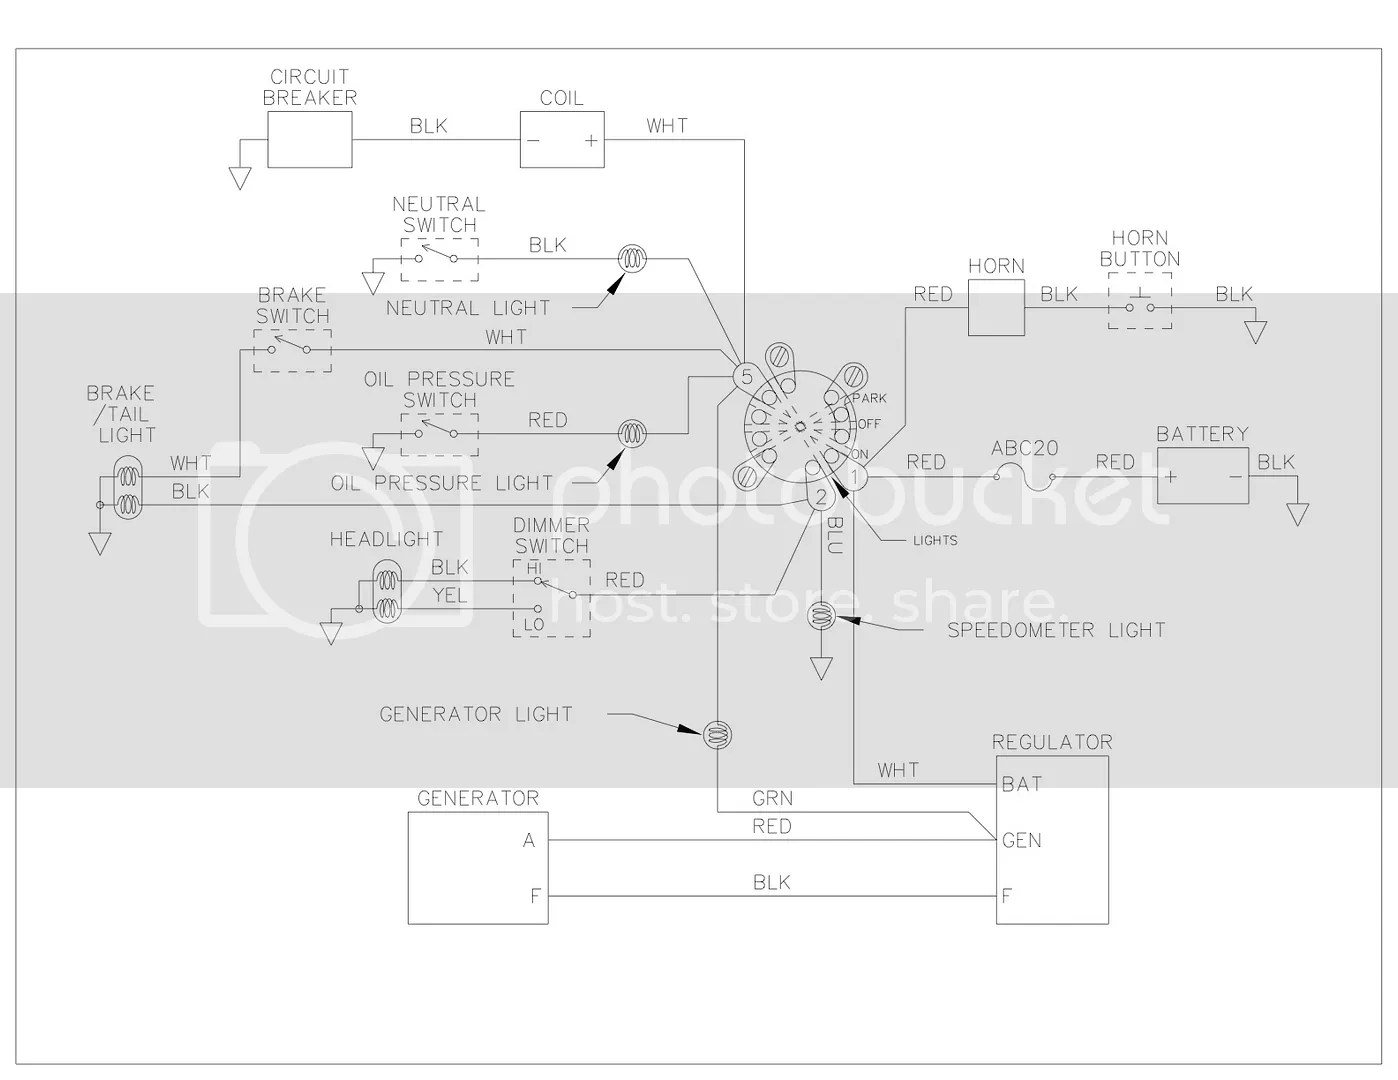 Need a simplified 5 Pole Ignition Switch Wiring Diagram